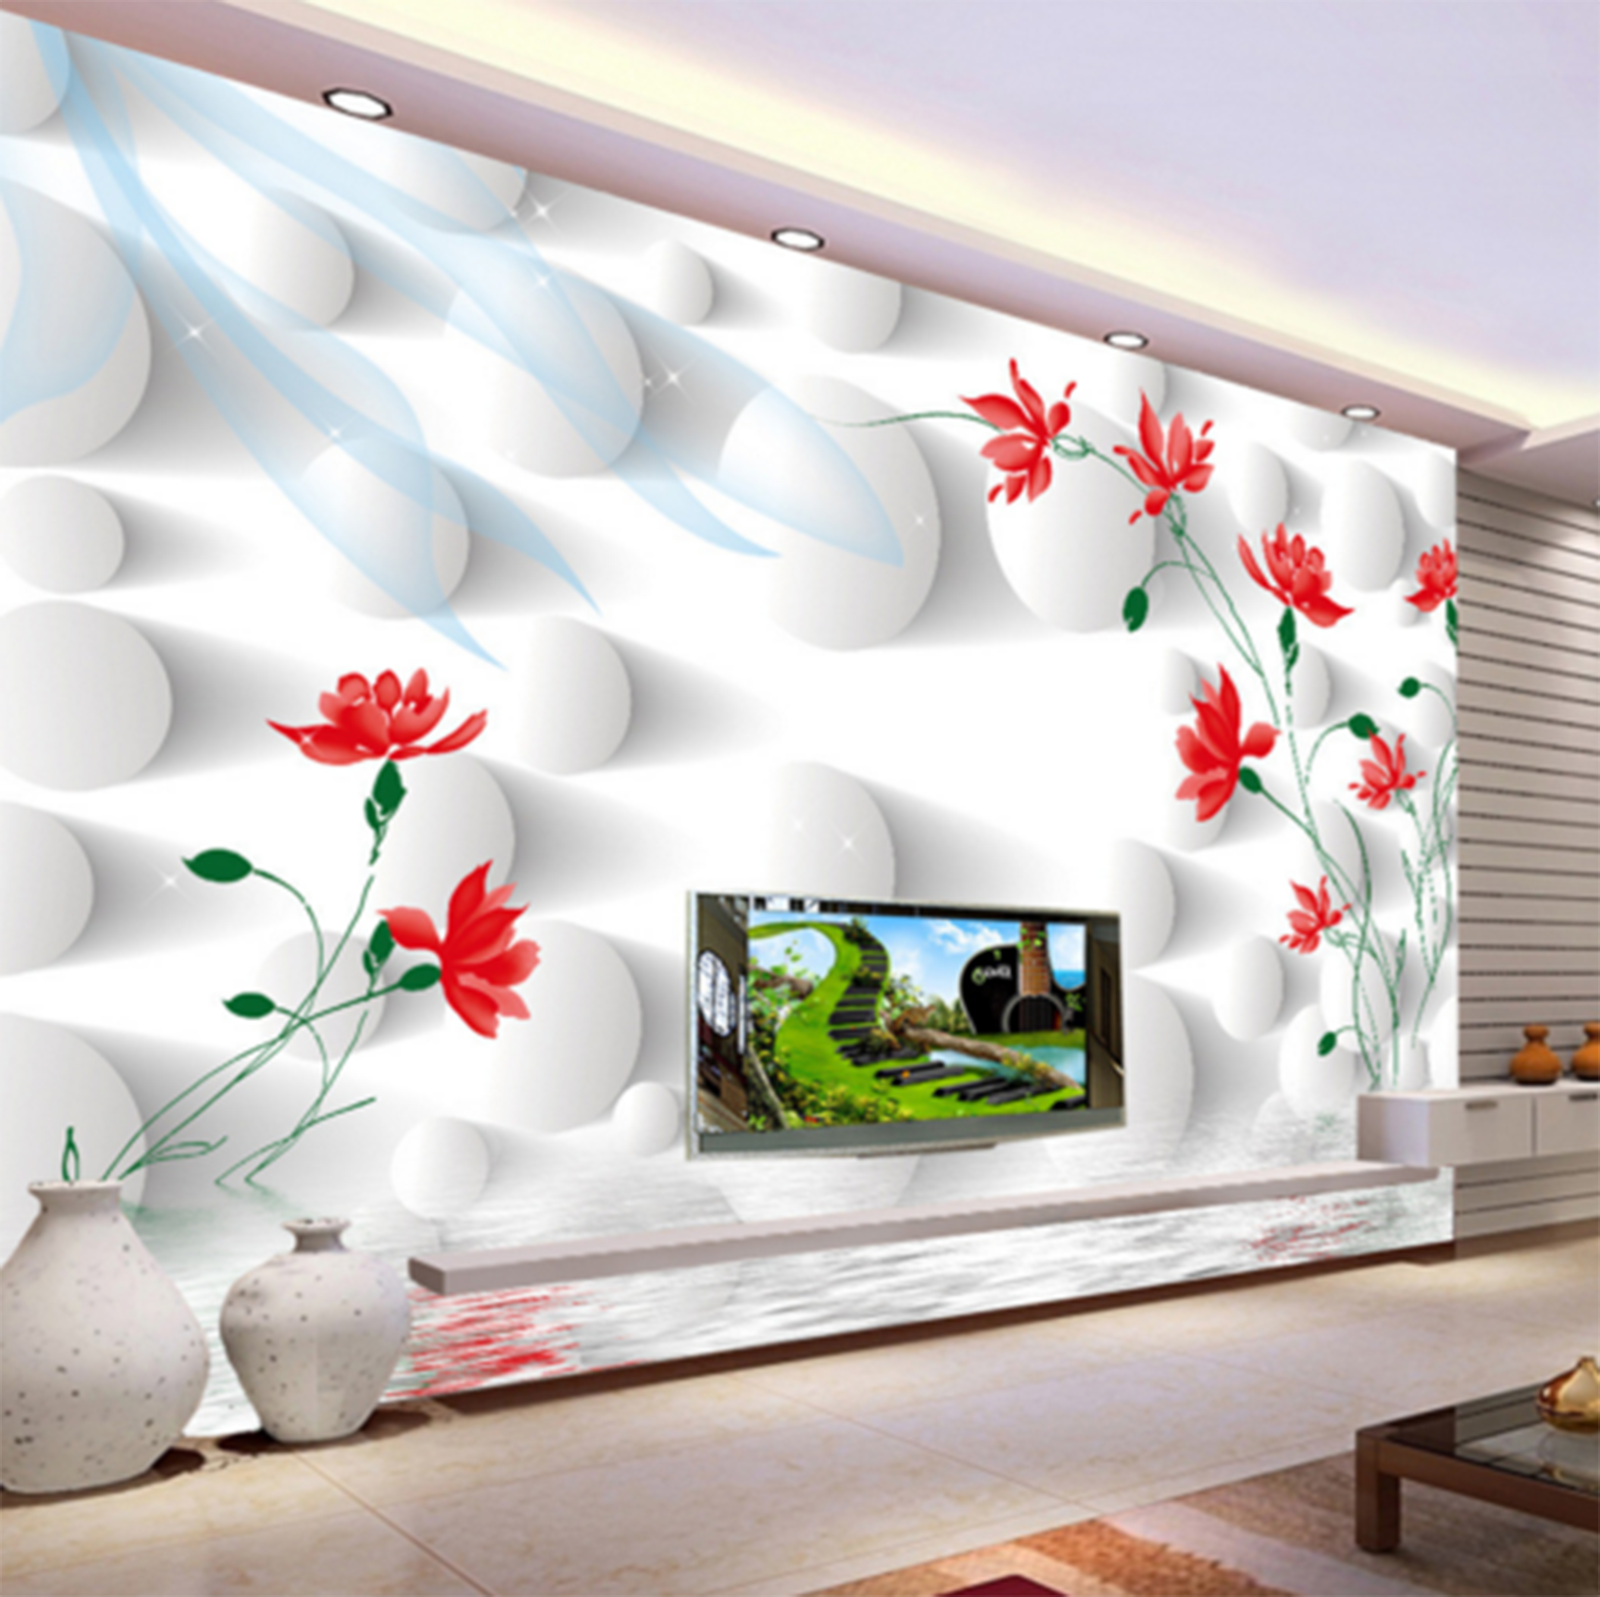 3D ROT Lotus 654 Wallpaper Murals Wall Print Wallpaper Mural AJ WALL AU Kyra